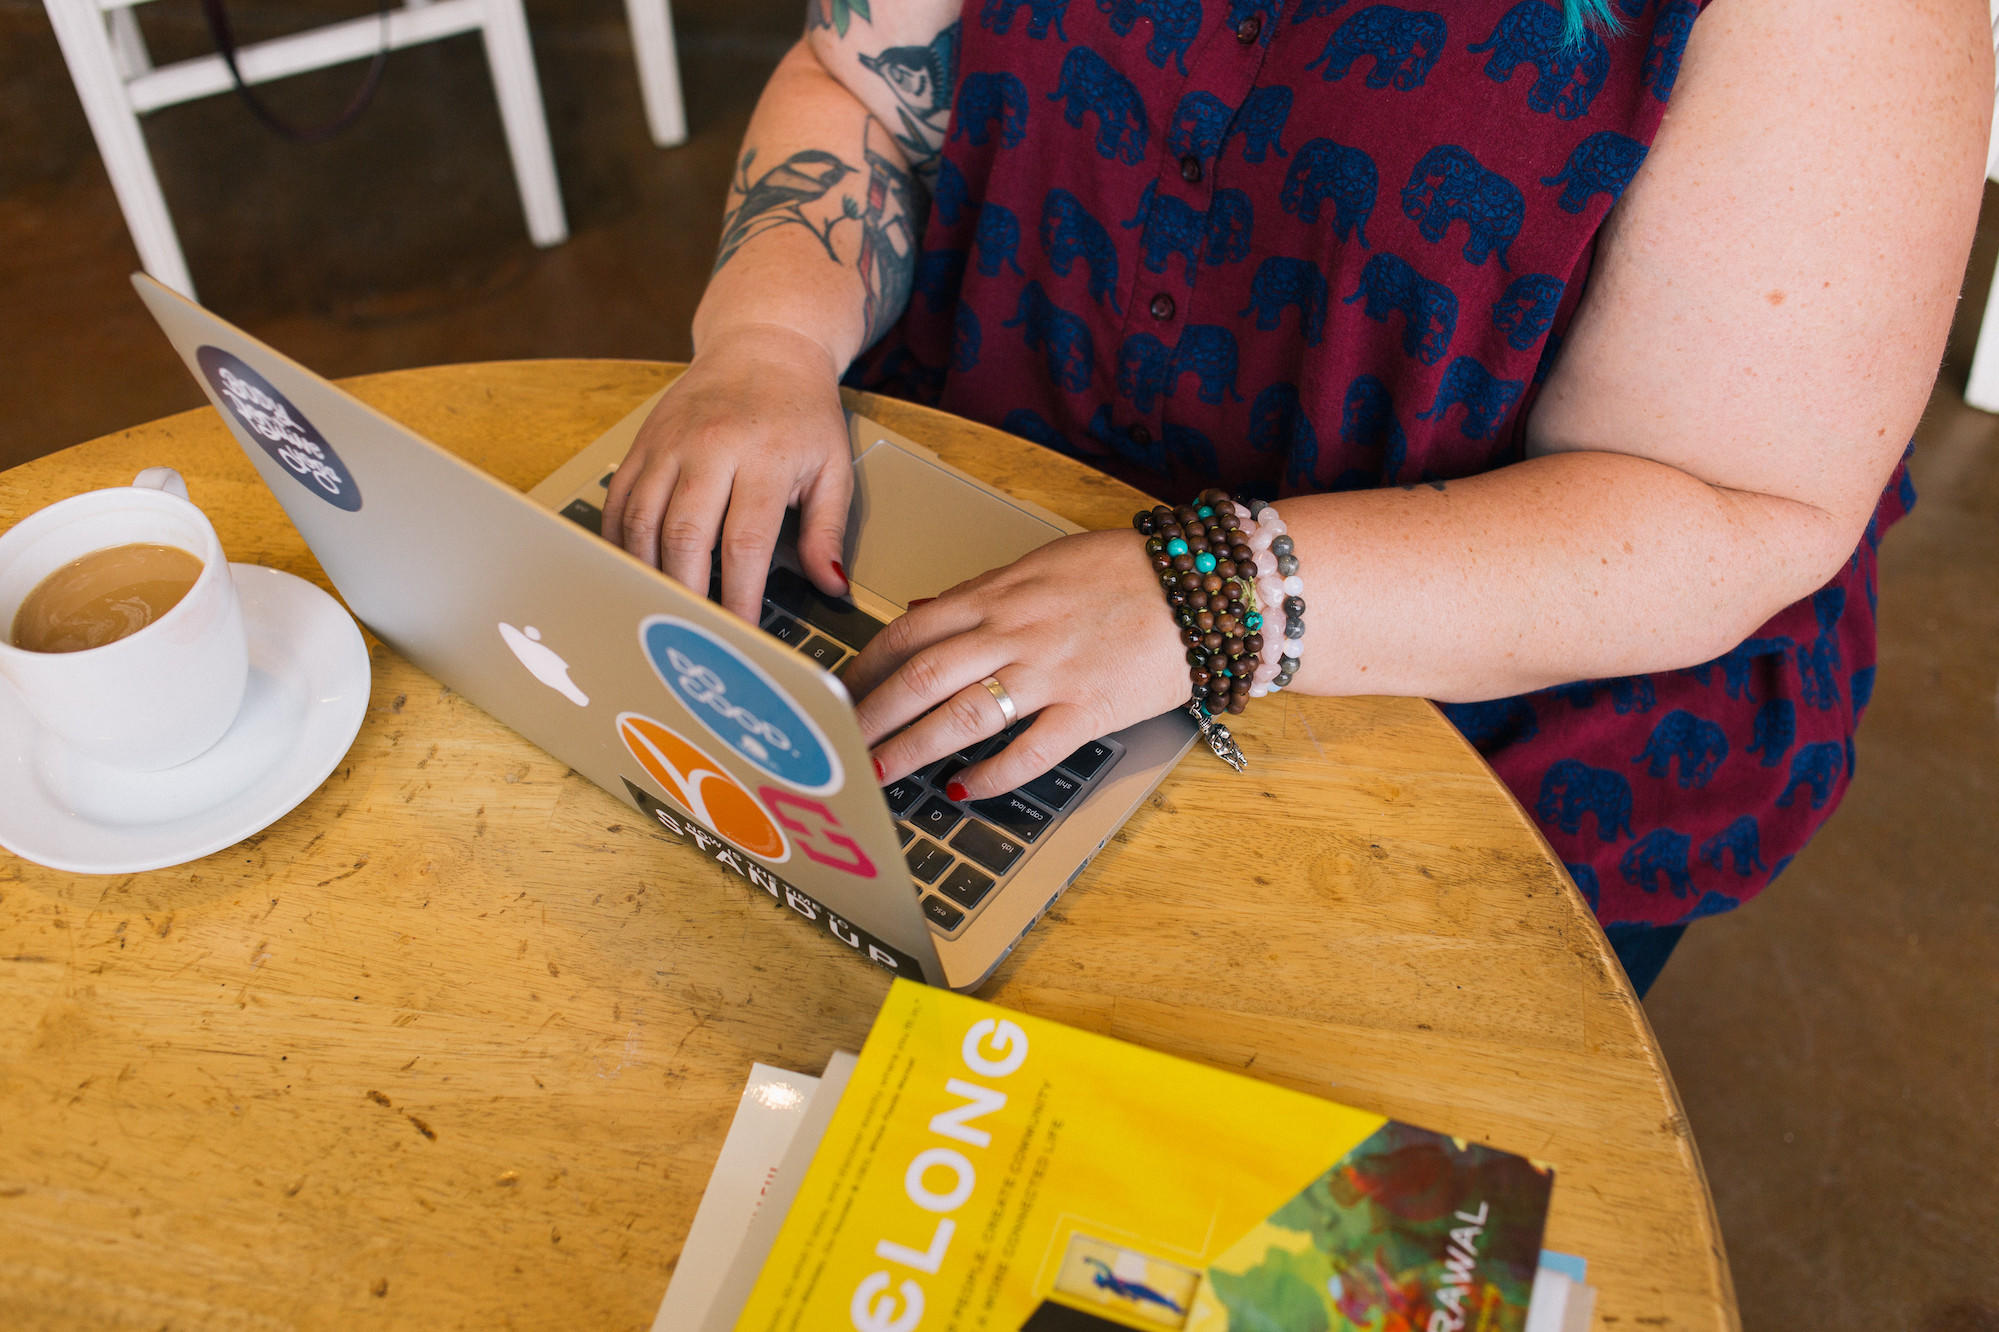 Photograph of Amber's hands typing on a laptop. A cup of coffee and stack of books are nearby